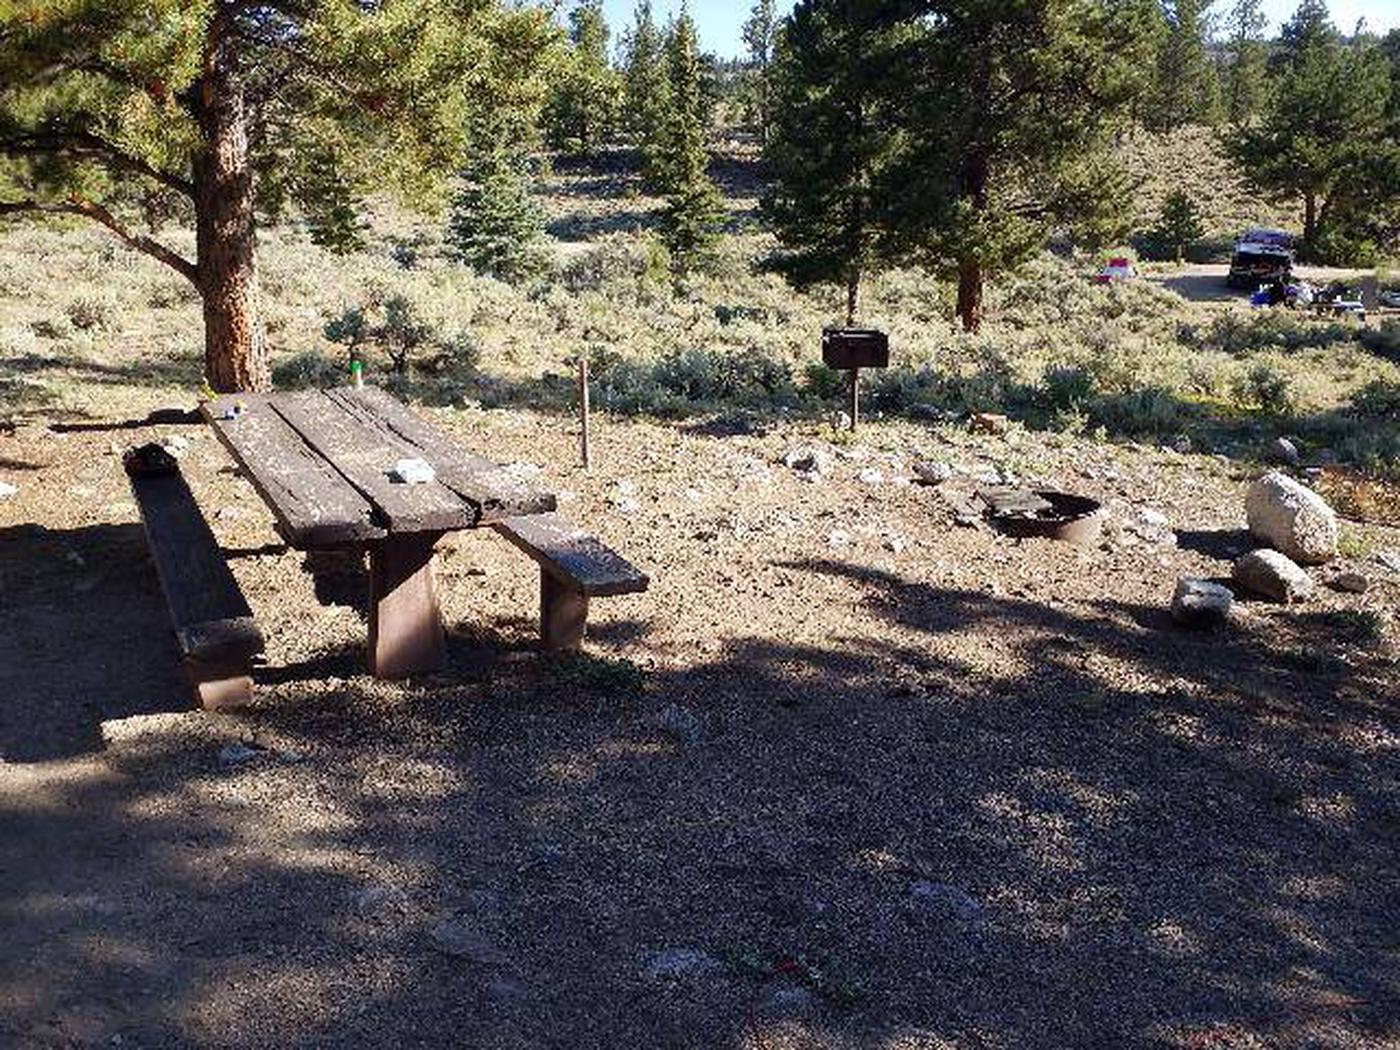 White Star Campground, site 52 picnic table White Star Campground, site 52 picnic table